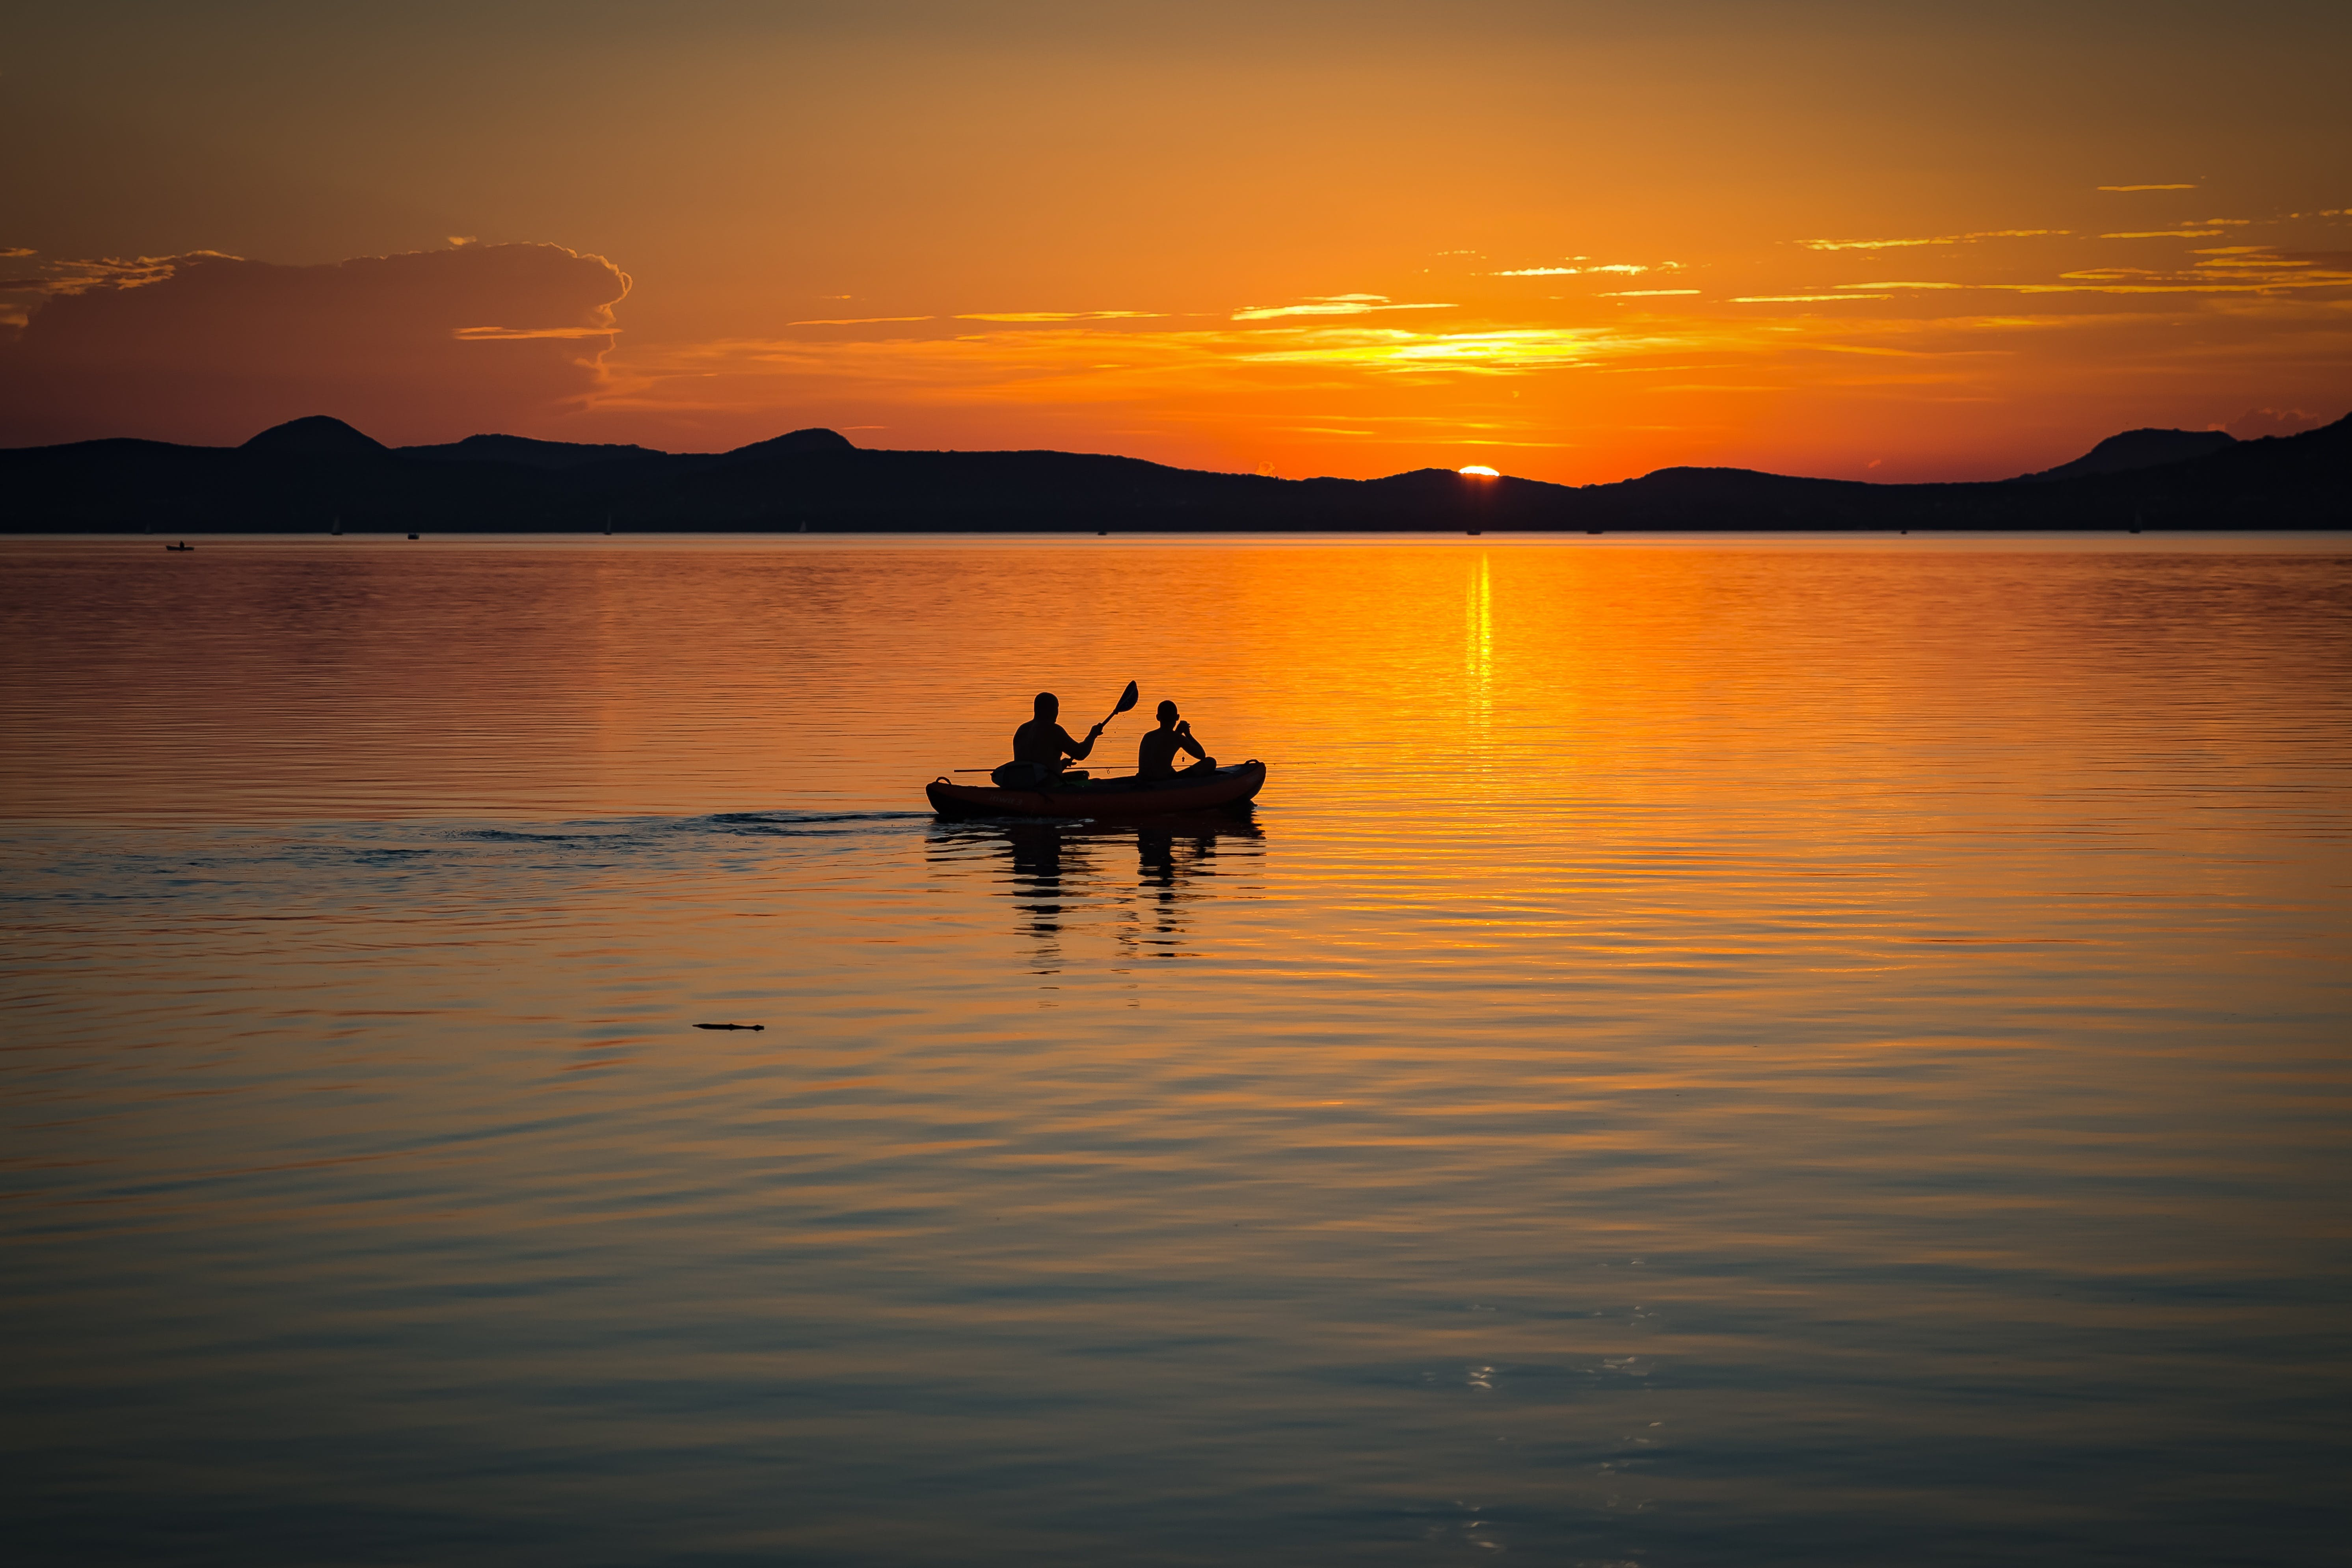 2 Person on Boat Sailing in Clear Water during Sunset